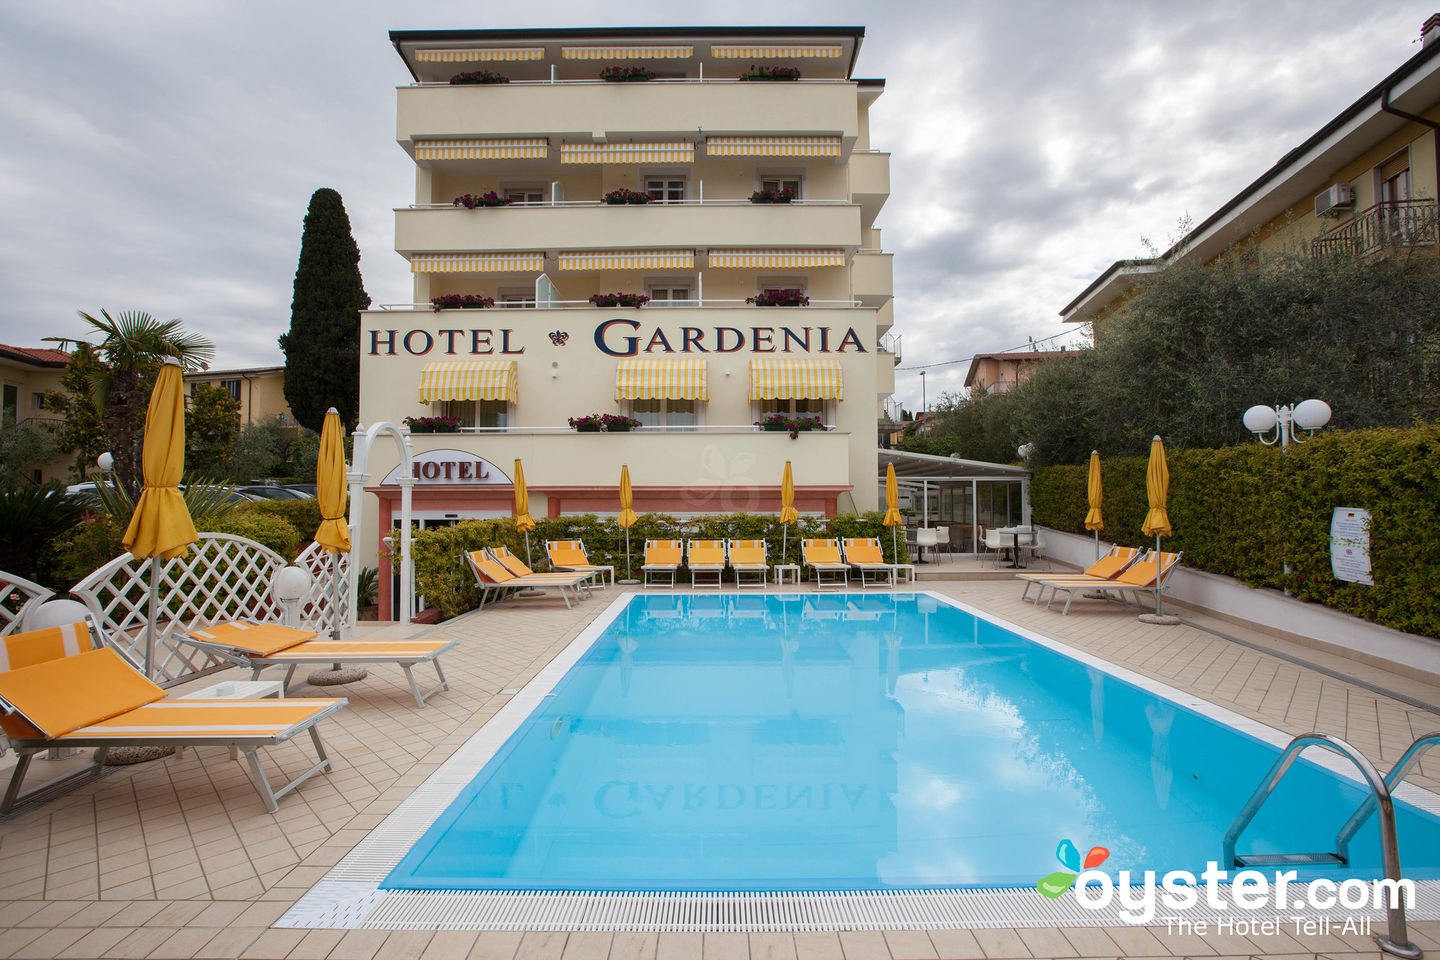 Hotel Gardenia Villa Charme Review What To Really Expect If You Stay